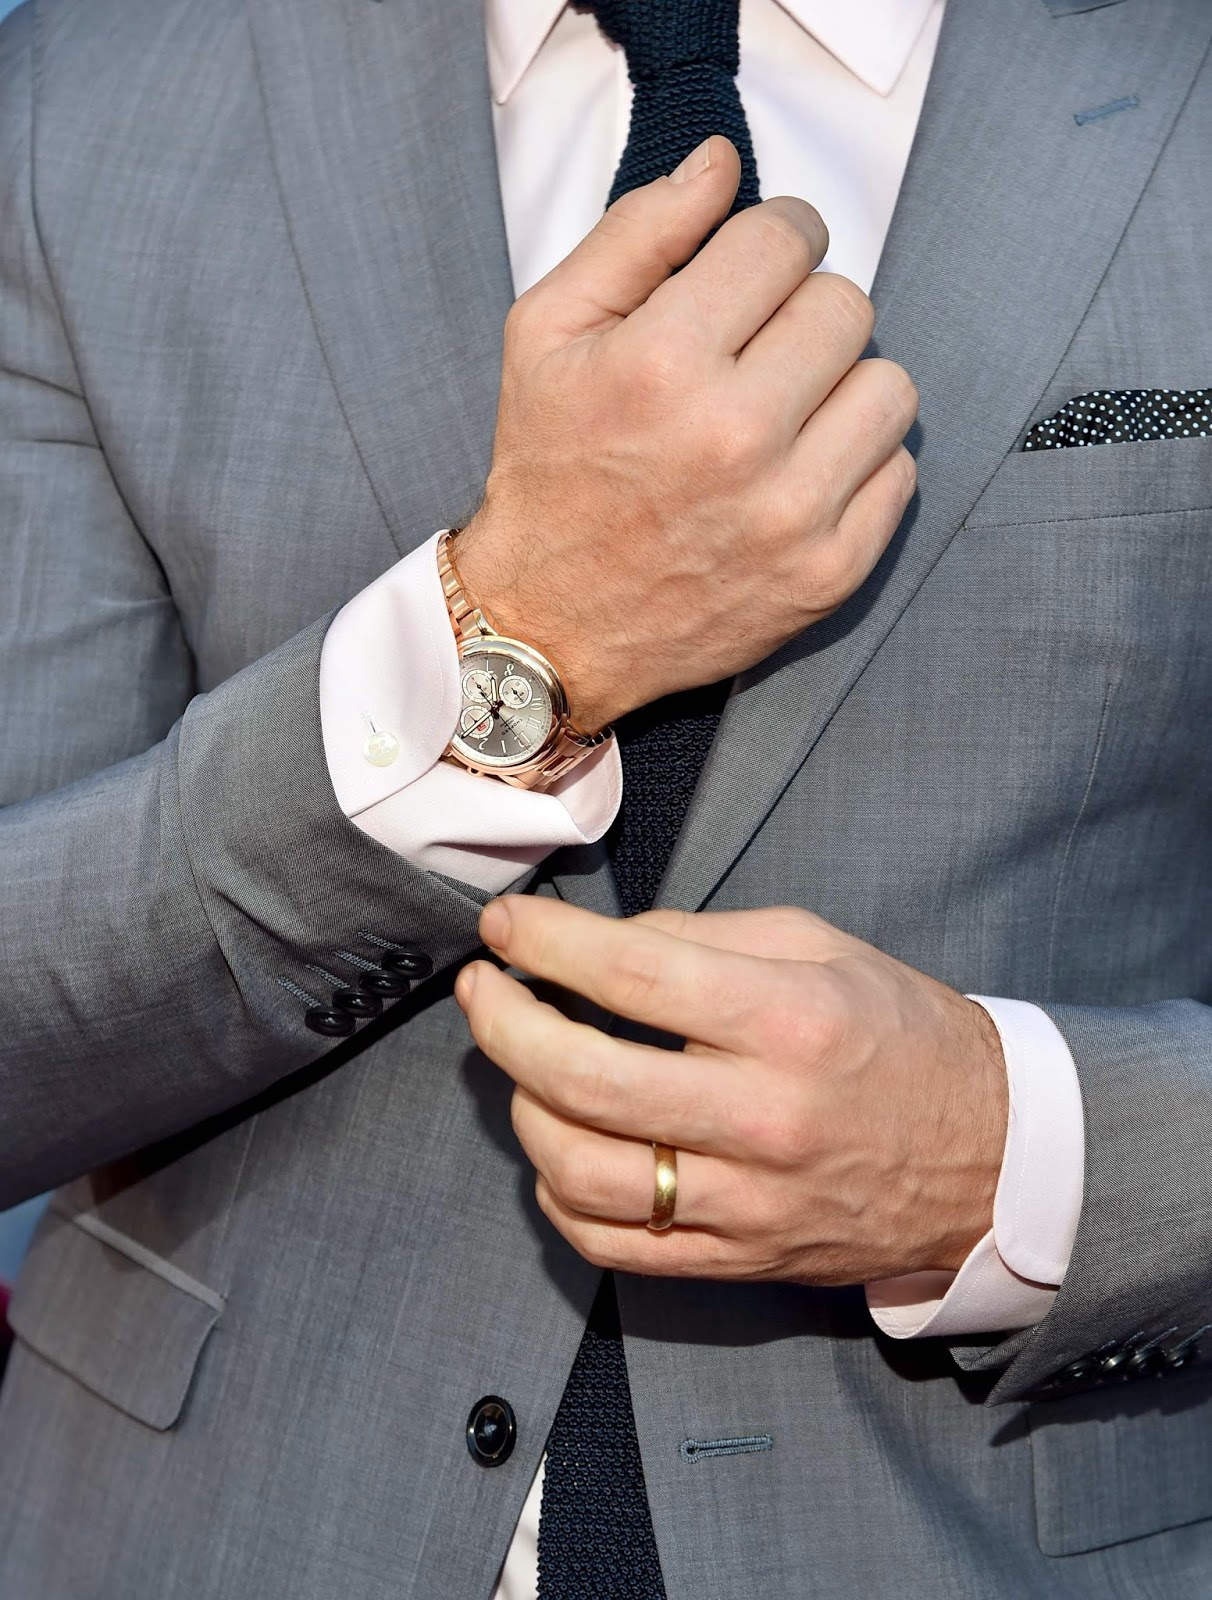 Chris Pratt's watch